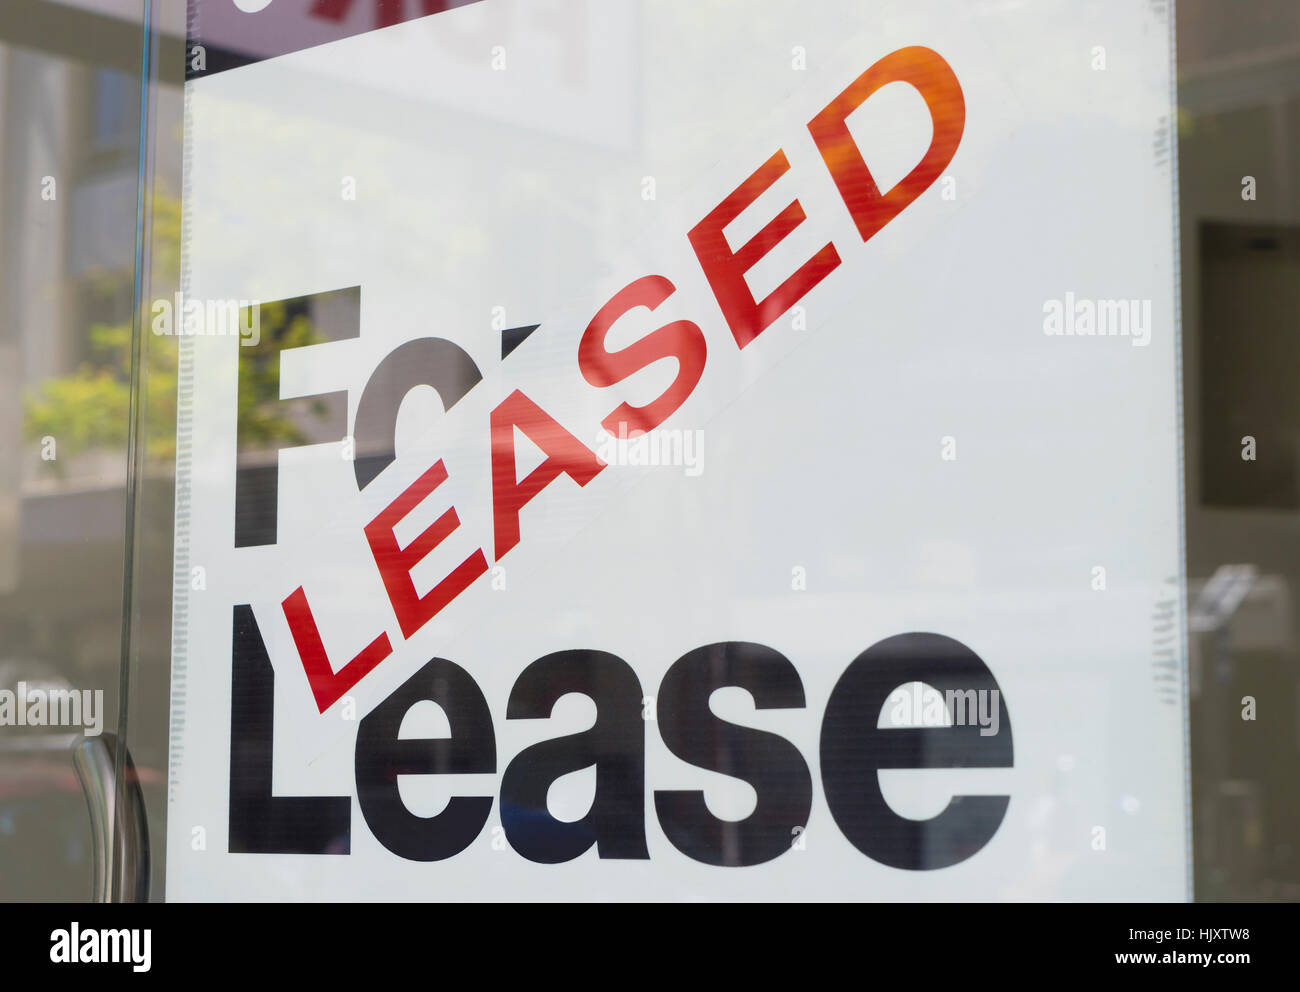 For lease and leased sign - Stock Image